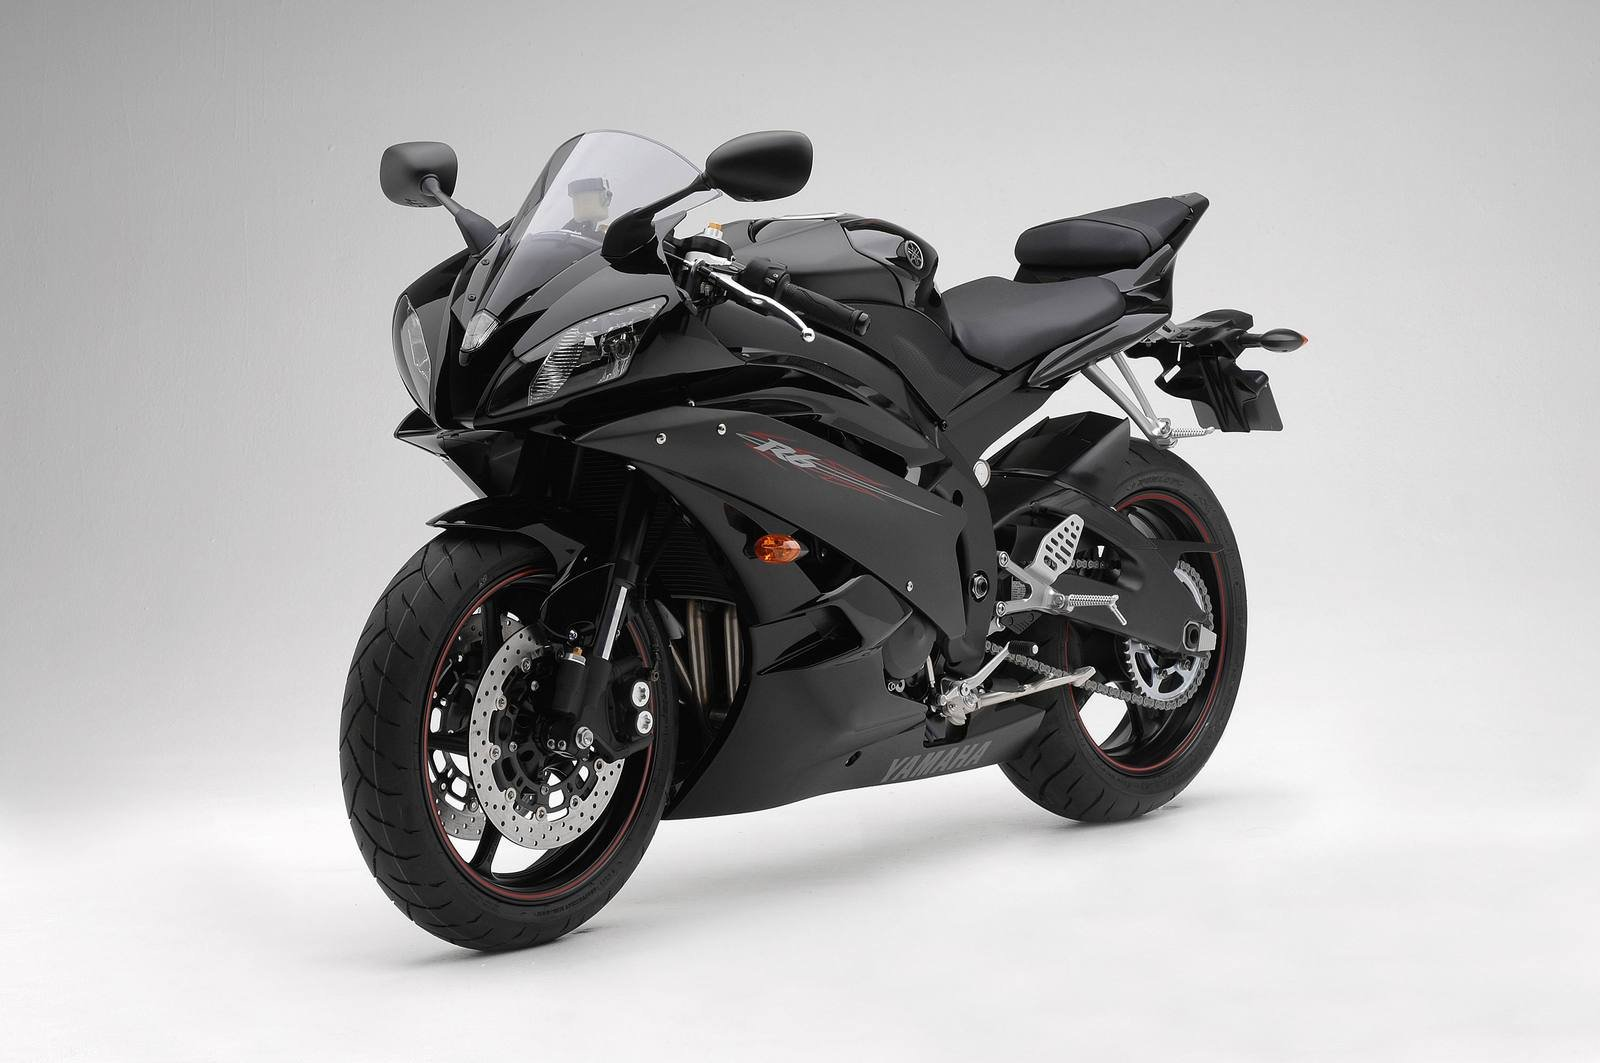 2006 yamaha yzf r6 picture 45430 motorcycle review for 2006 yamaha yzf r6